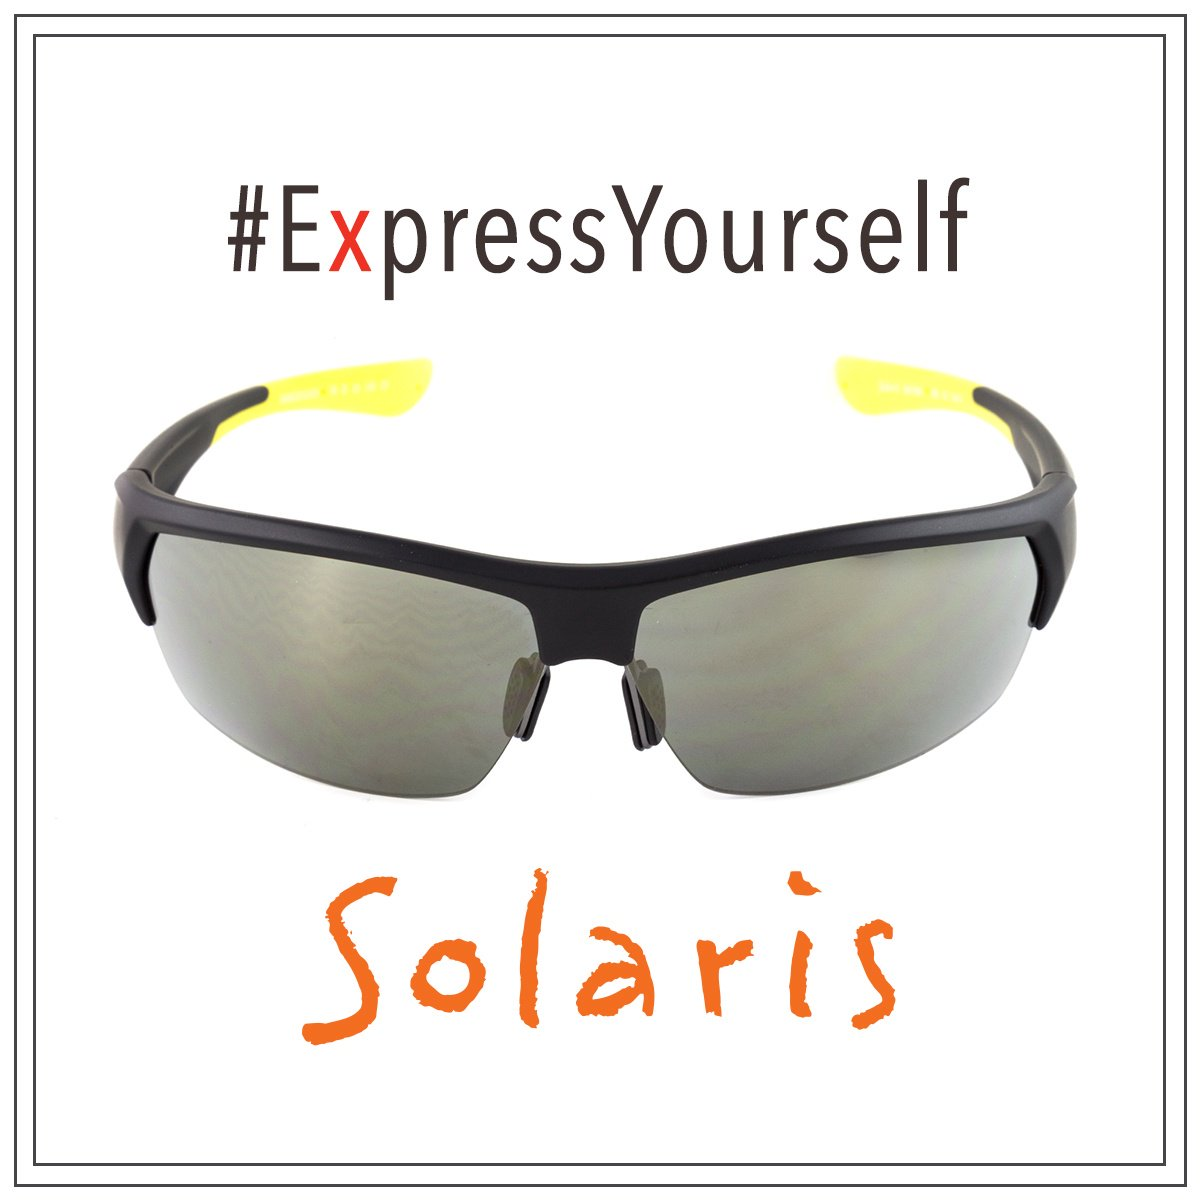 Follow @VisionExpress & RT to #Win these #Solaris Sports sunglasses! How do you #ExpressYourself? #WinItWednesday https://t.co/tCBYD1uWvA